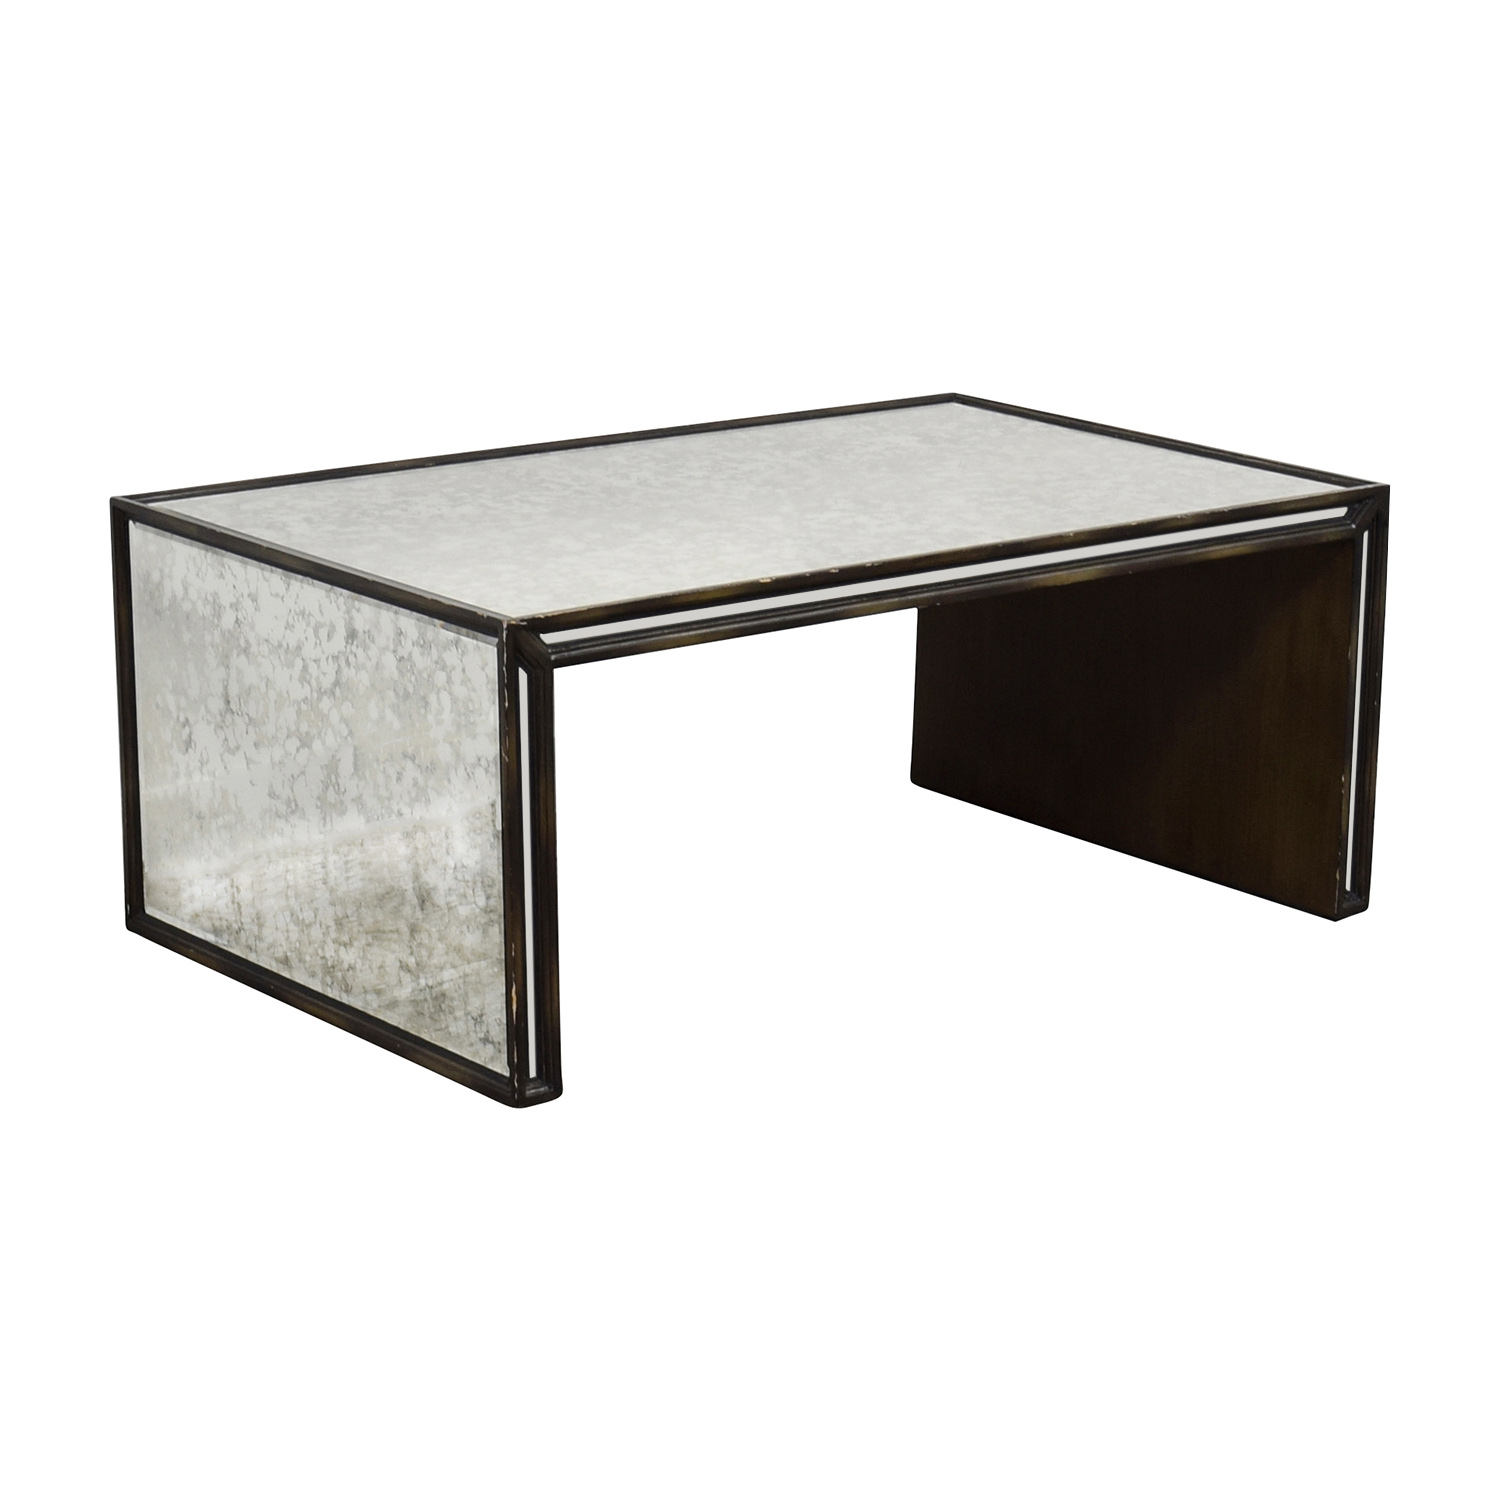 90 Off Arhaus Furniture Arhaus Mirrored Coffee Table Tables